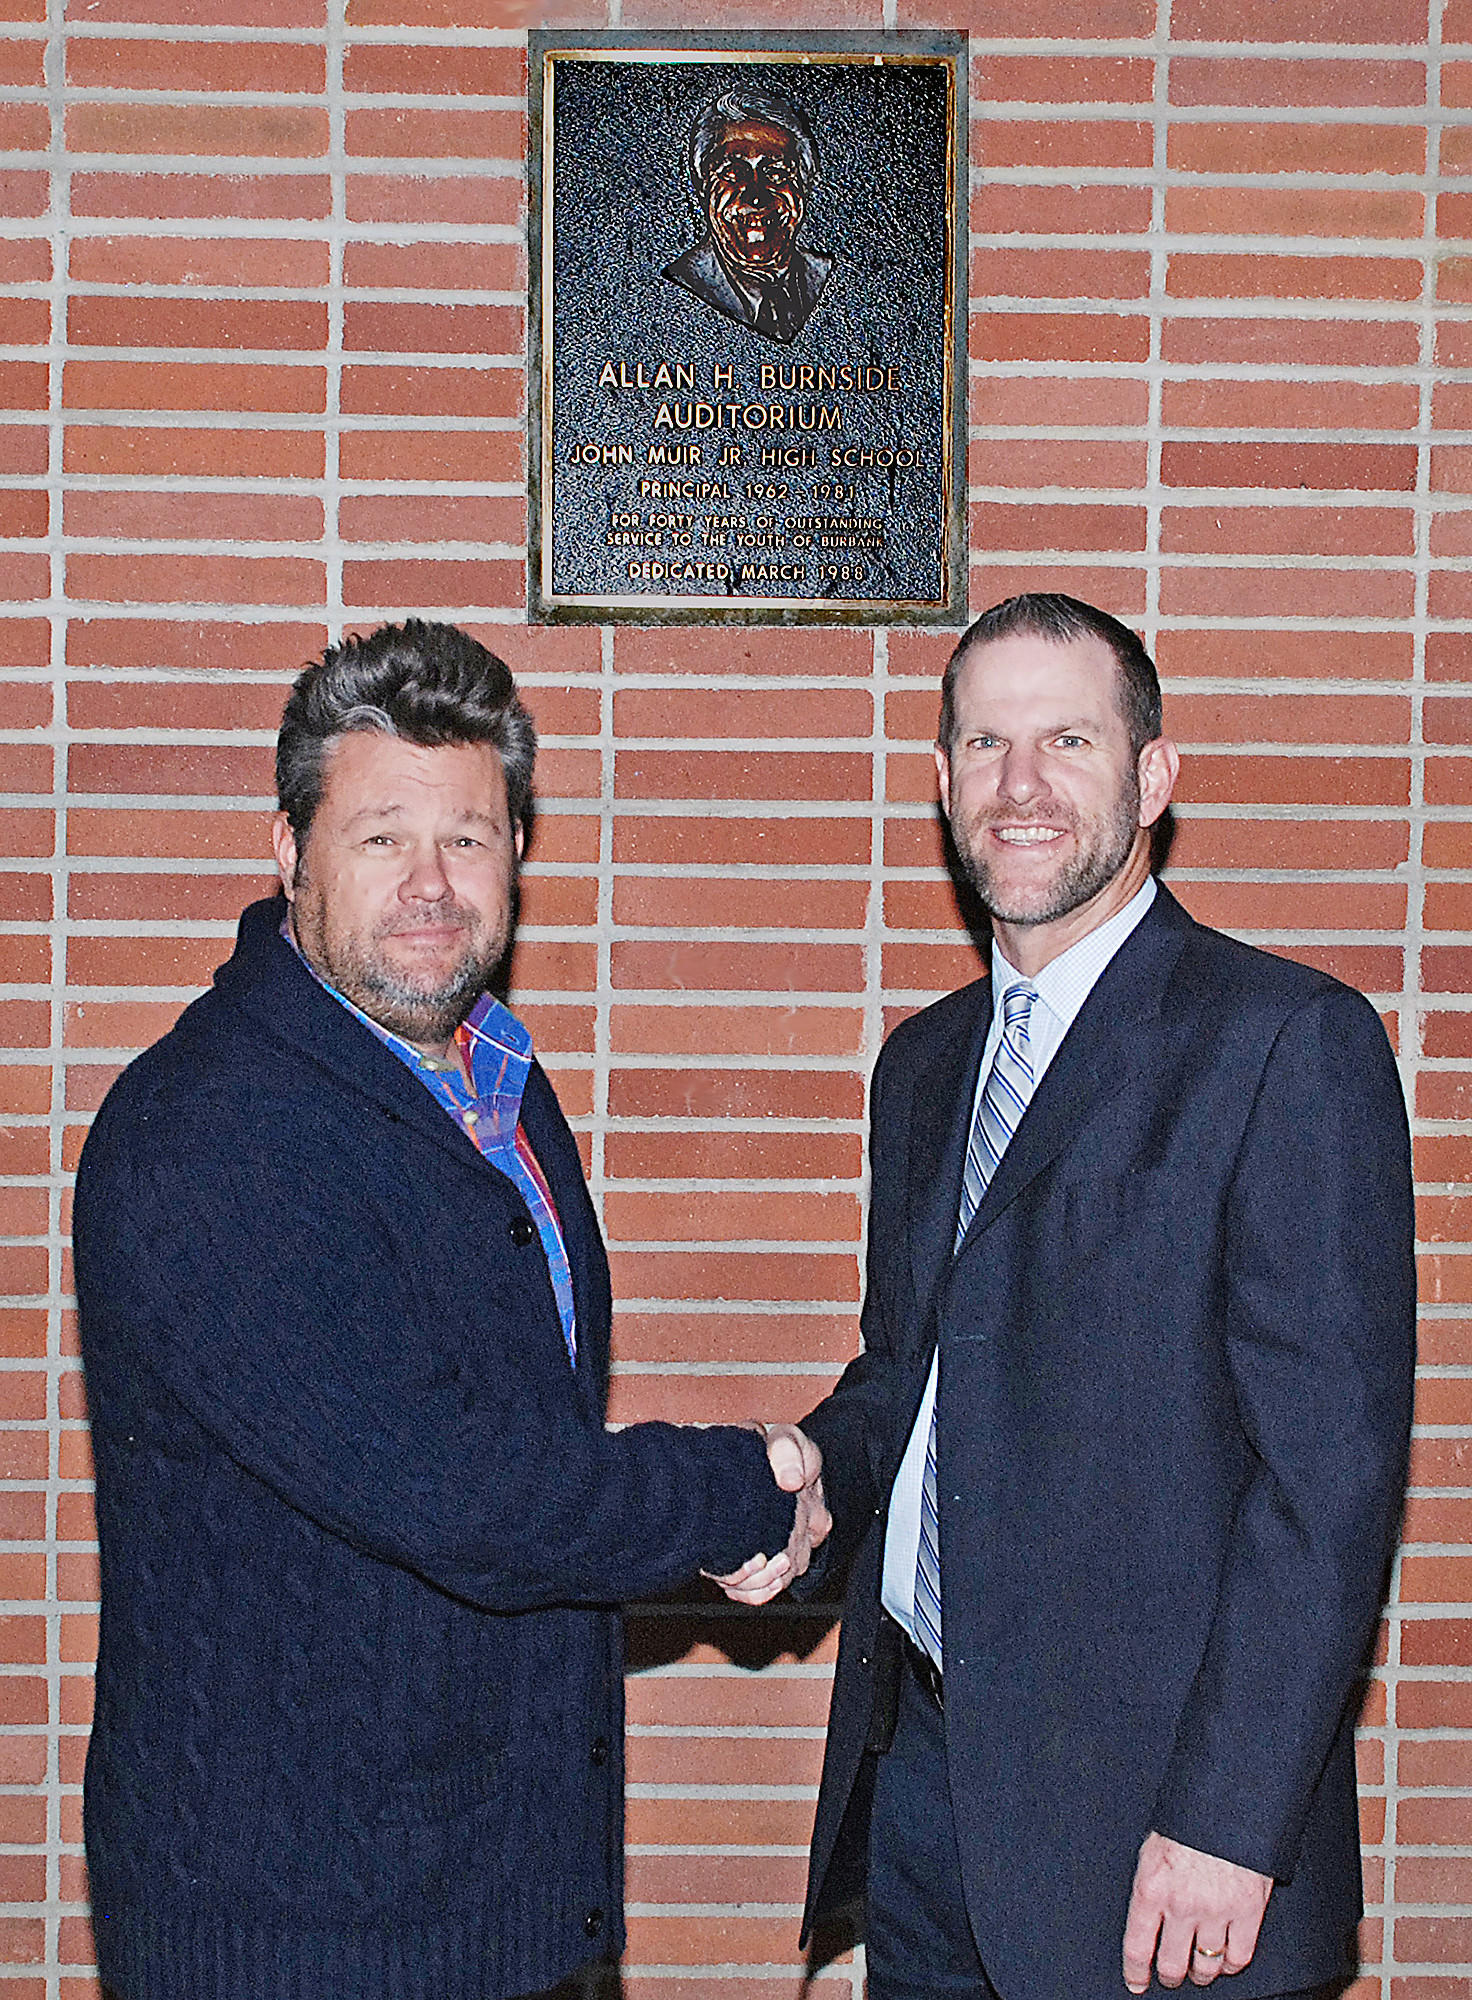 """Carson Smith, left, from Nickelodeon, and John Muir Middle School principal Greg Miller talk about """"The Really Big Show"""" benefit that will raise funds to upgrade the Allan H. Burnside Auditorium."""